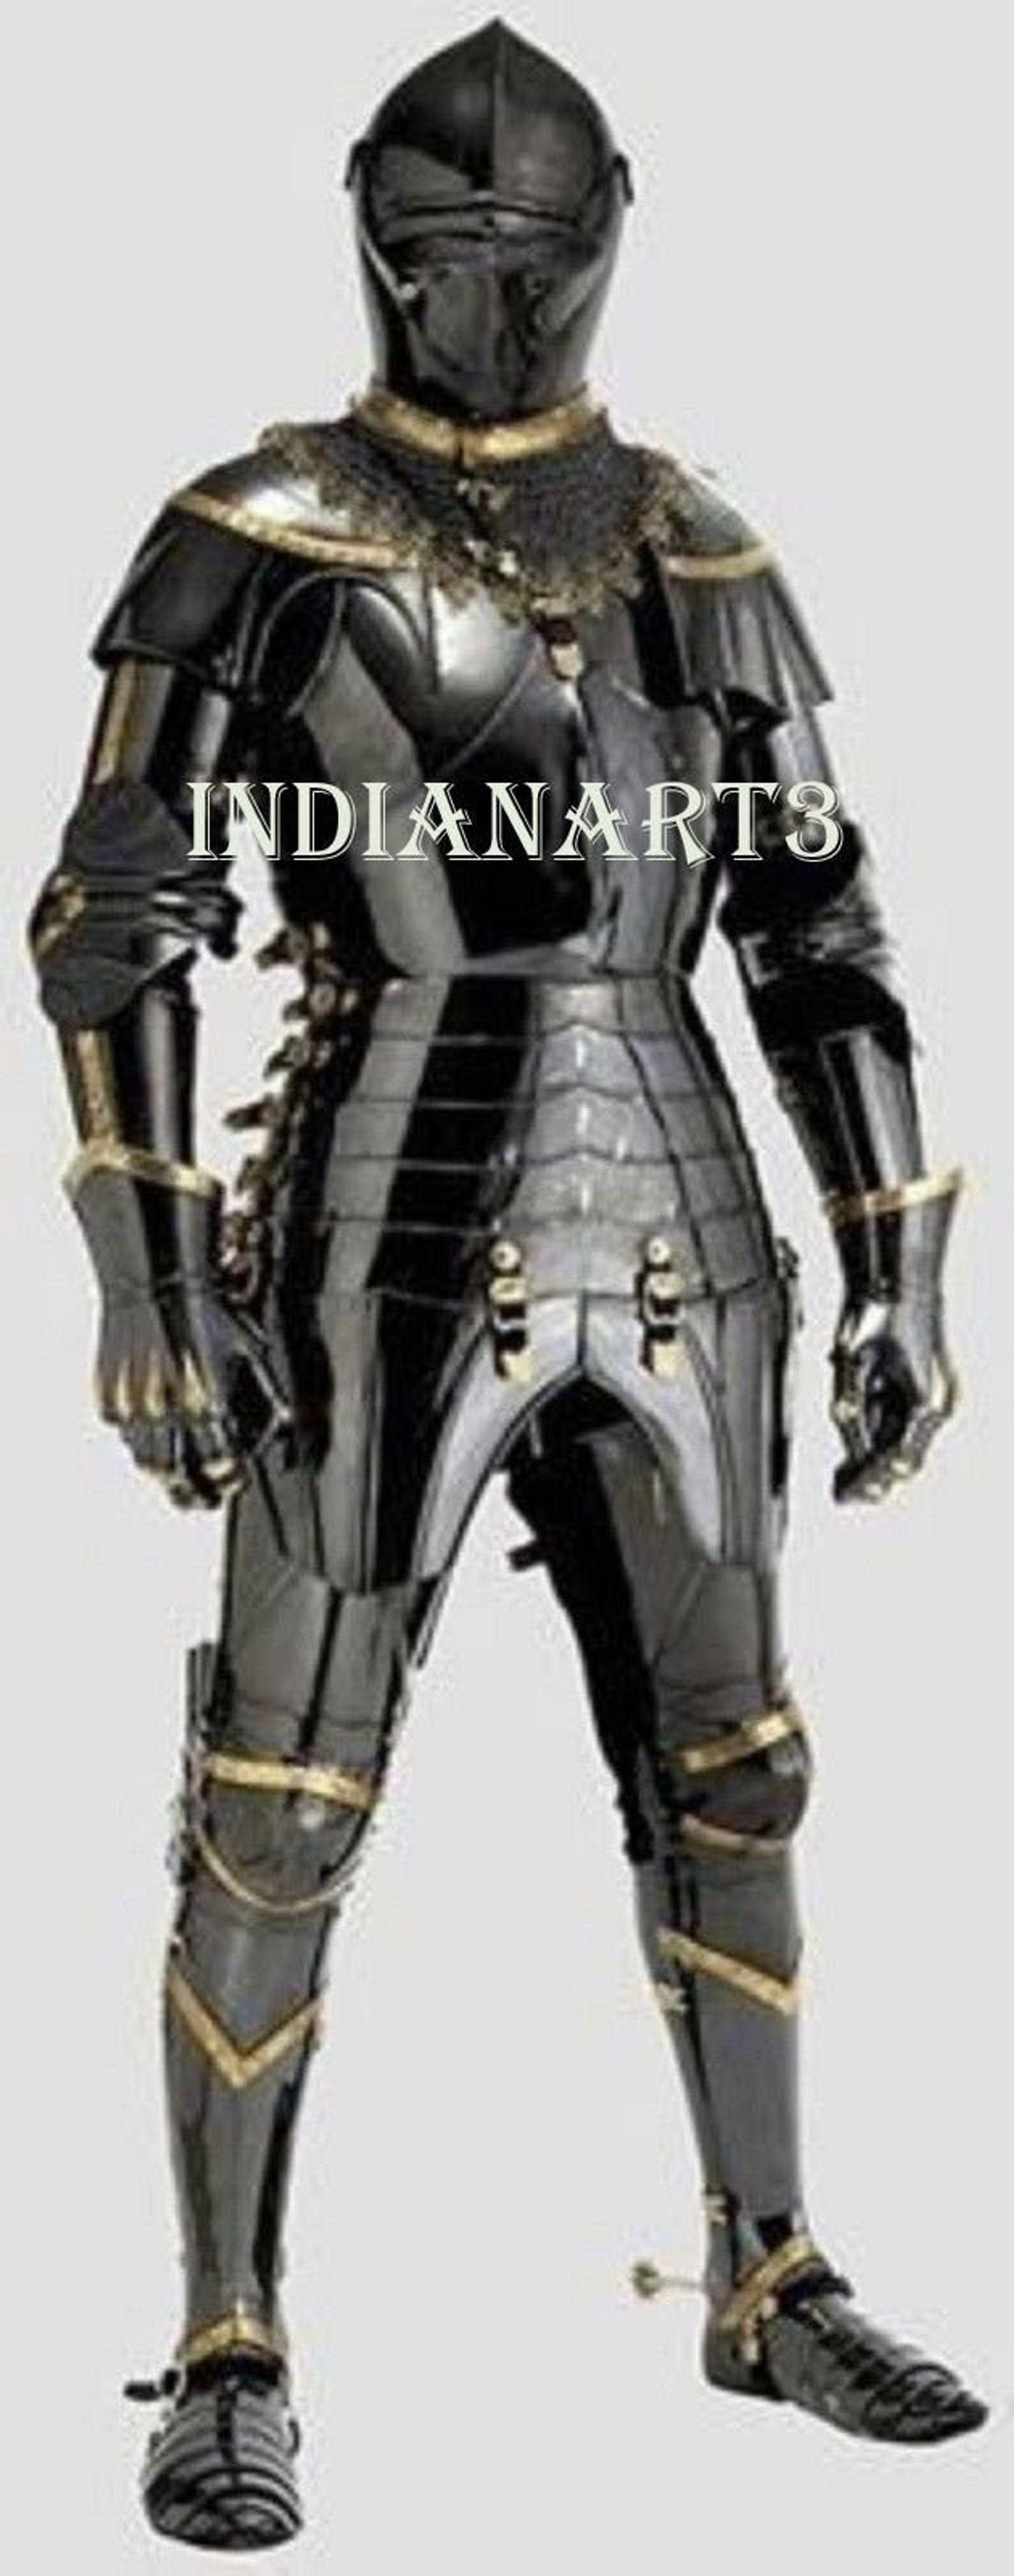 Combat Full Body Armour Black Knight Wearable Middeleeuwse Ridder Harnas